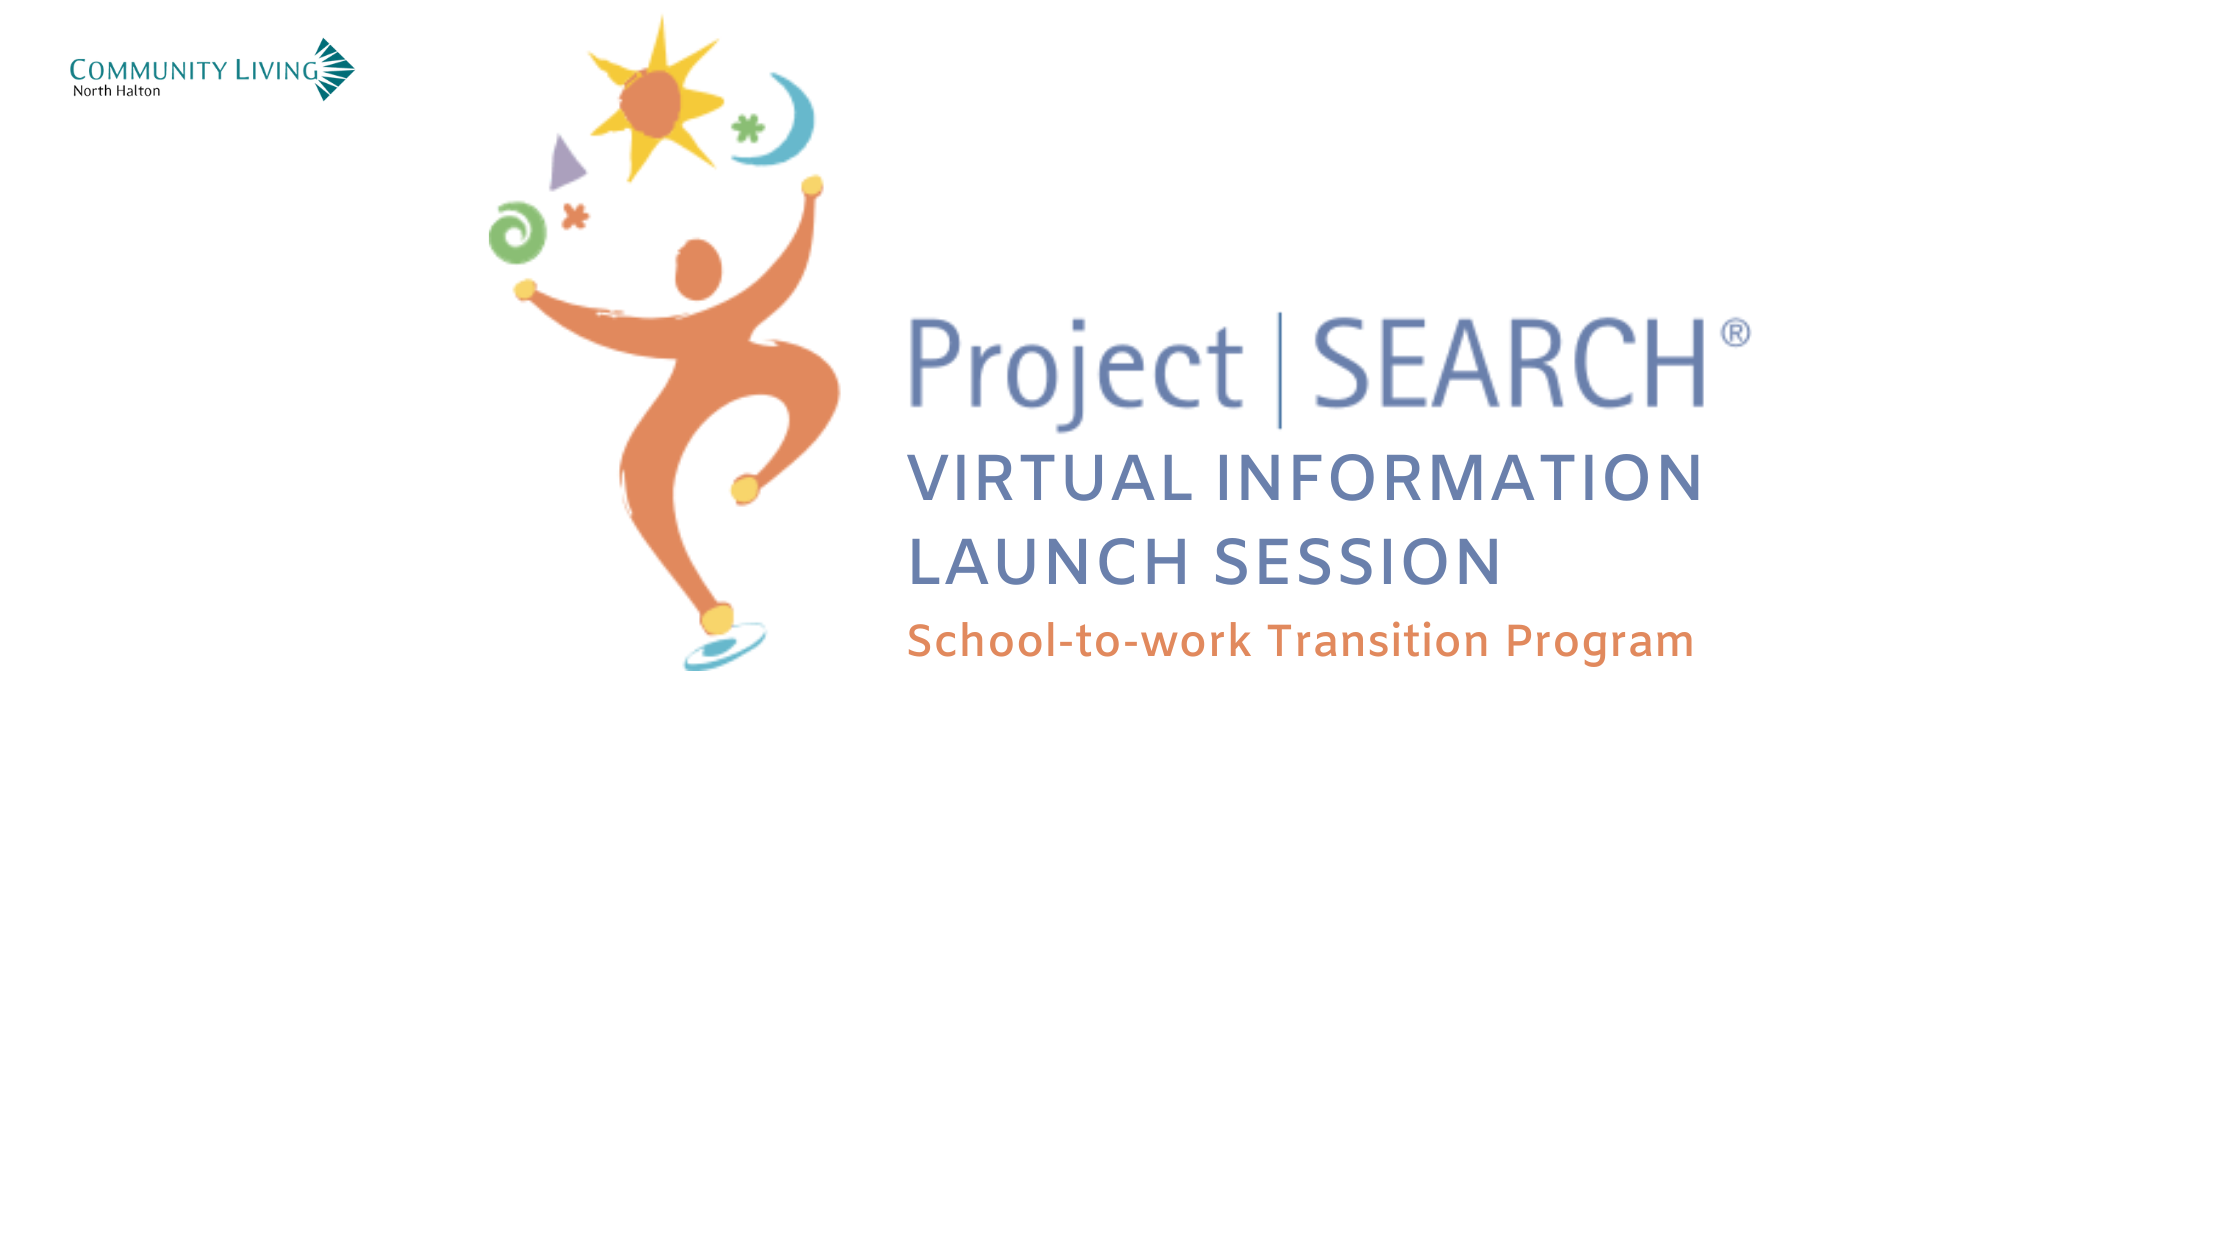 Project SEARCH - School-to-work Transition Program